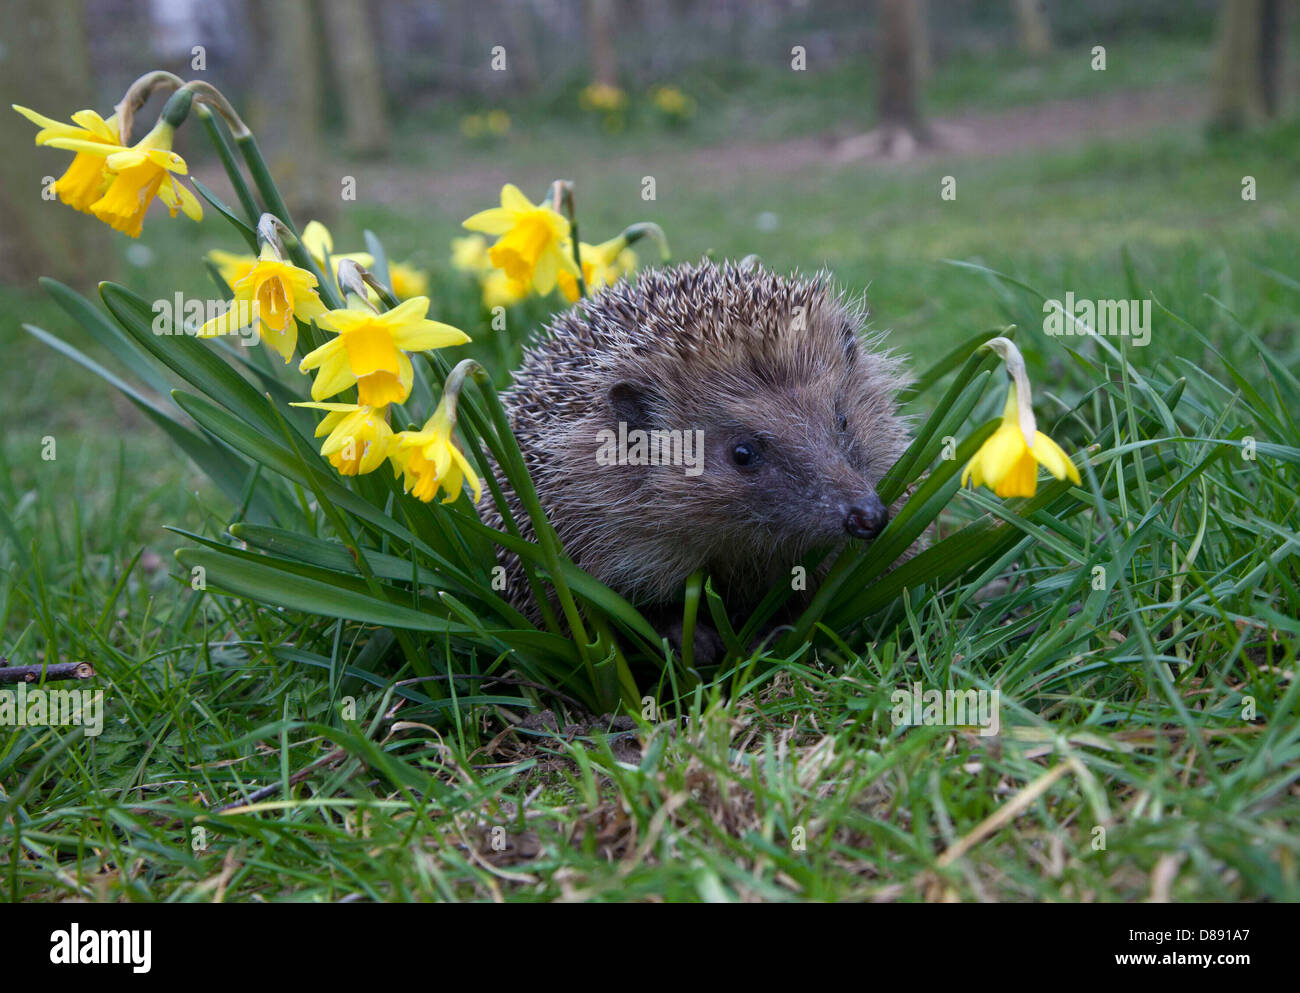 European hedgehog in garden - Stock Image